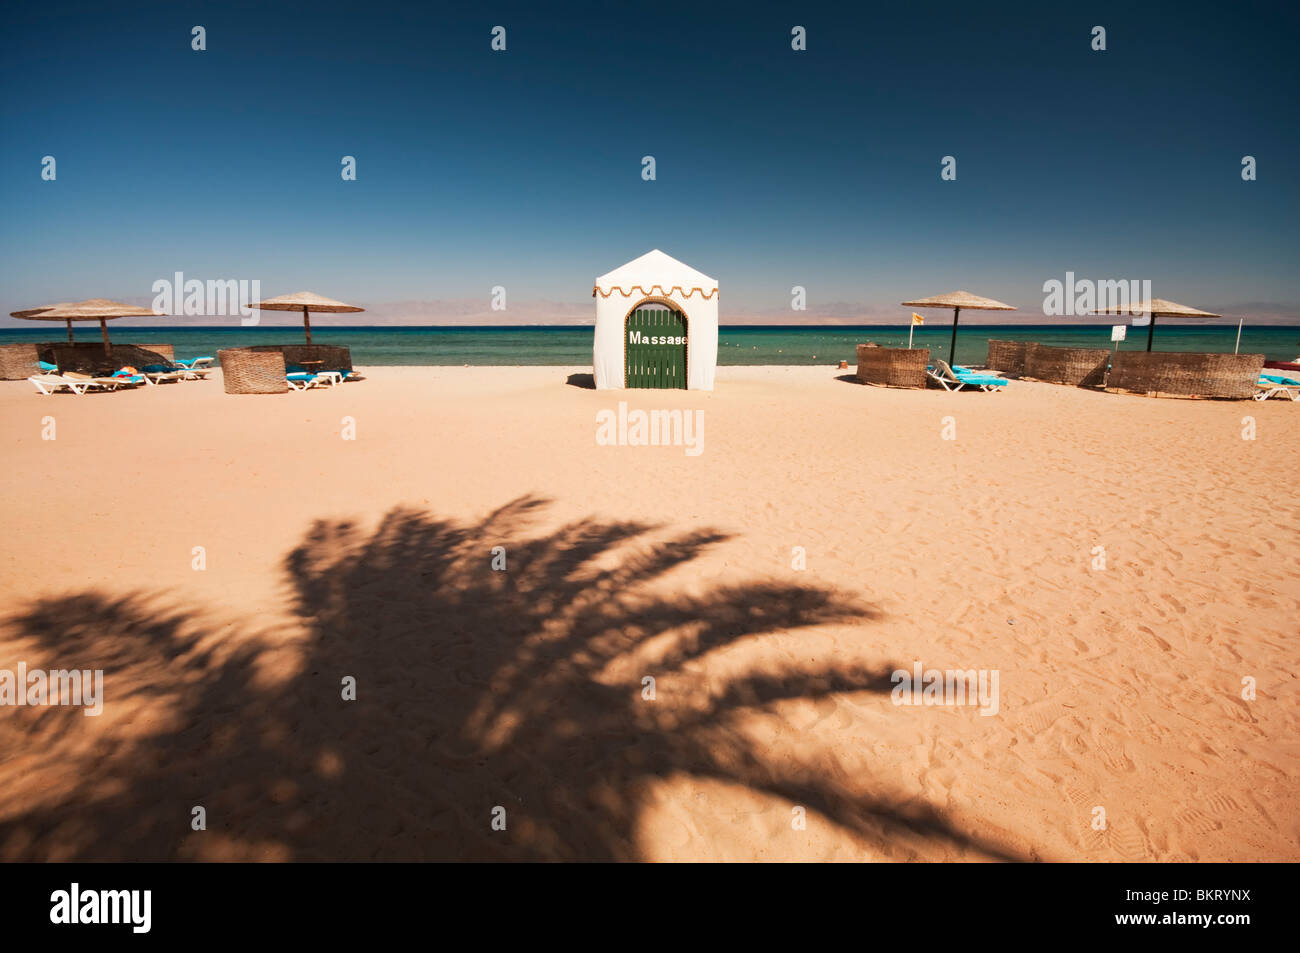 An exotic and beautiful beach on the Egyptian coastline with a shadow of a palm tree and the customary umbrellas - Stock Image